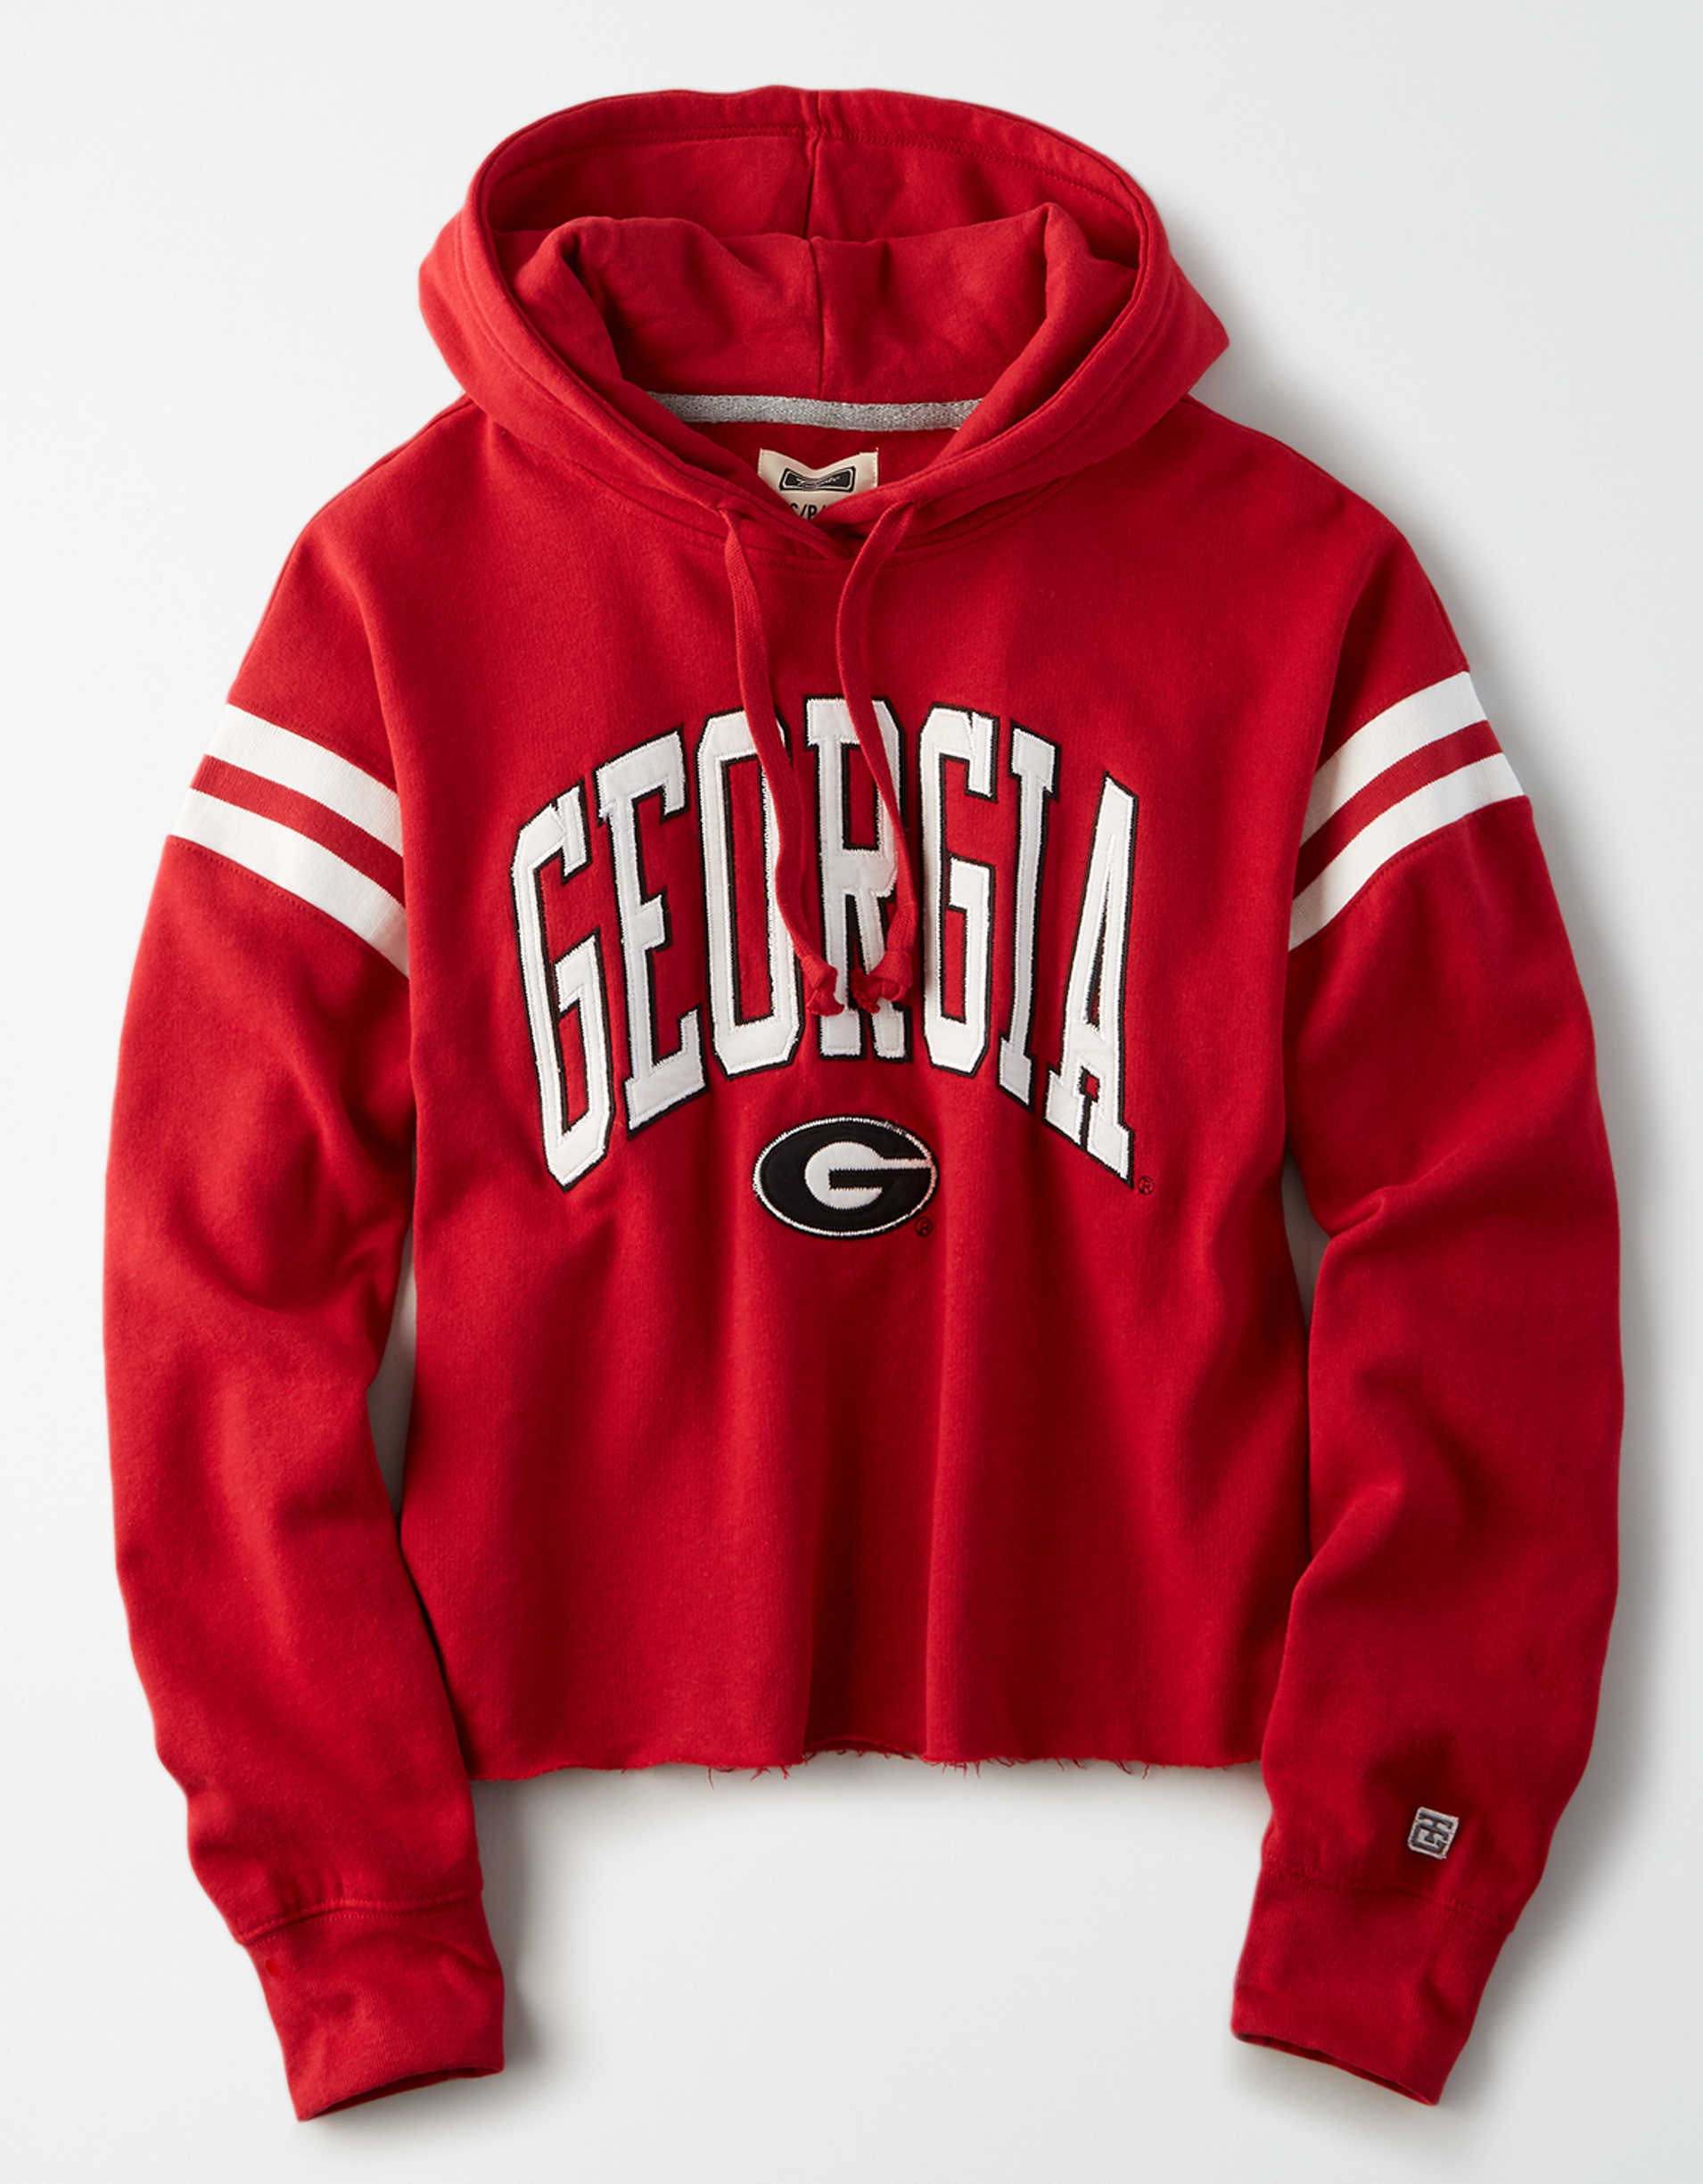 Tailgate Women's Georgia Bulldogs Cropped Fleece Hoodie